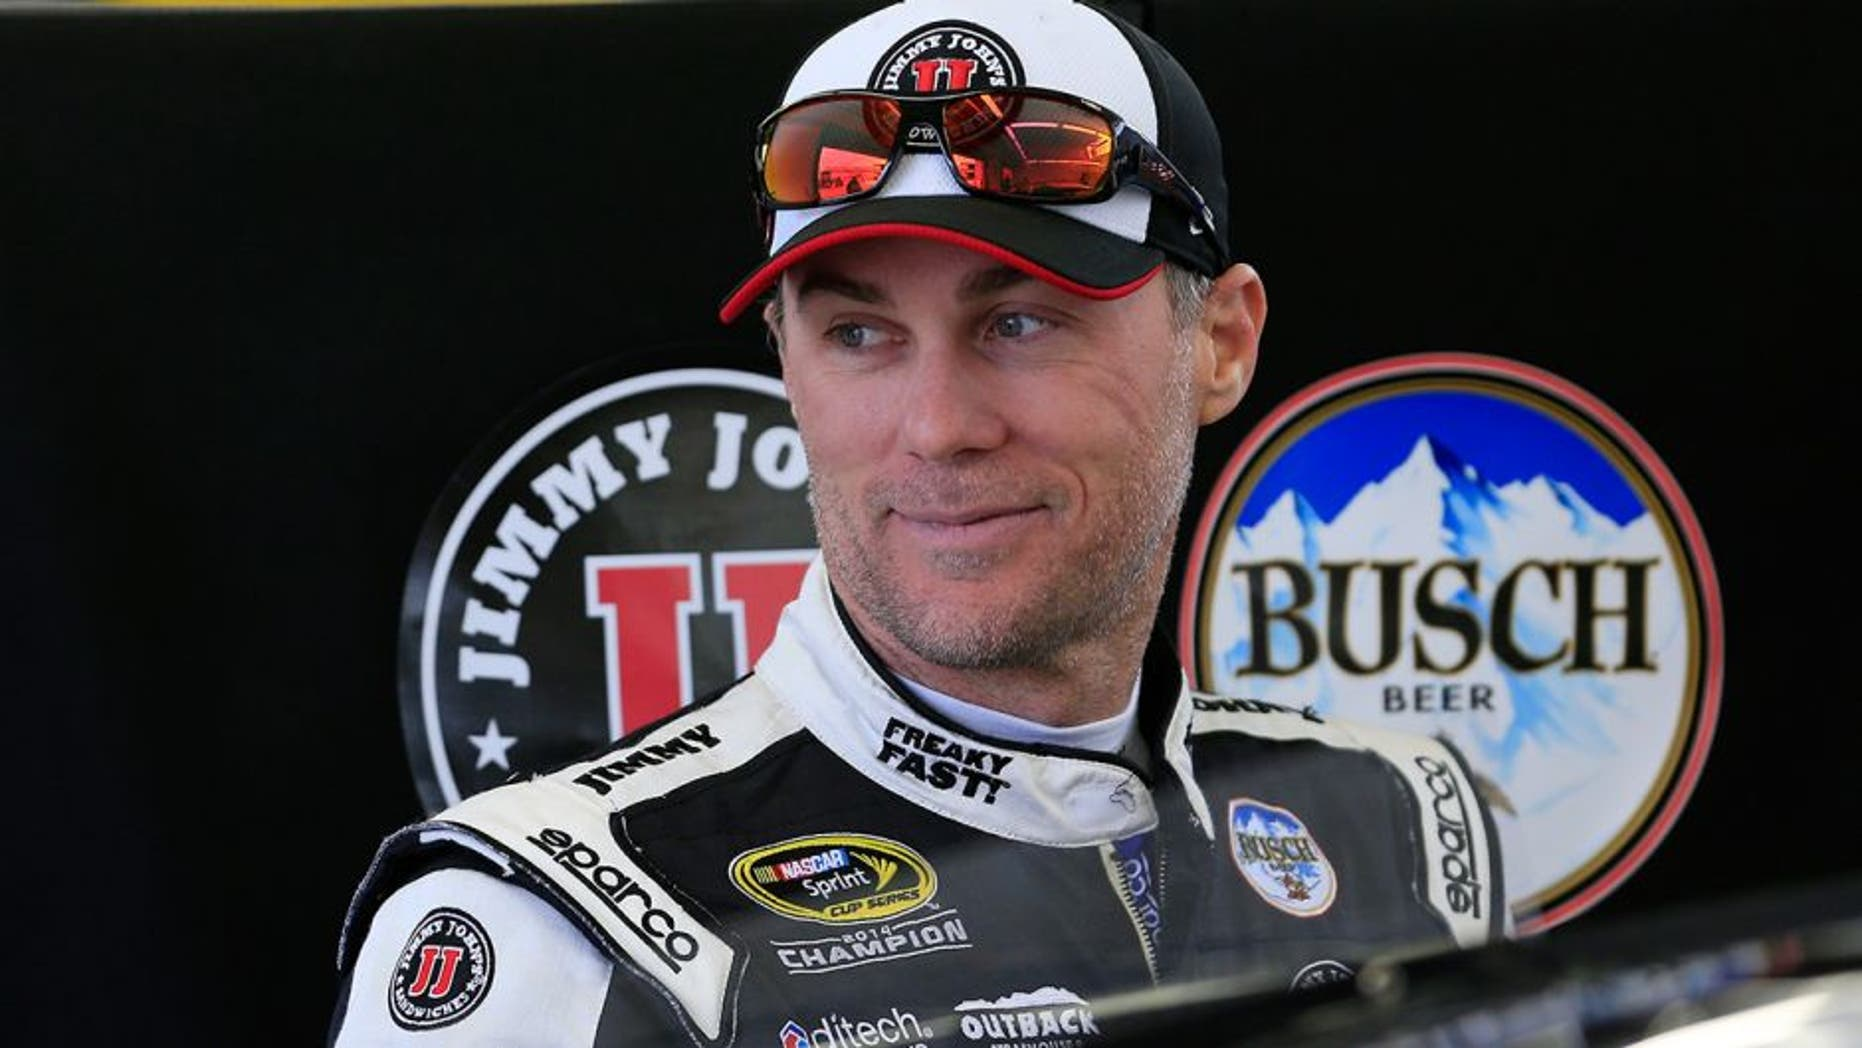 LAS VEGAS, NV - MARCH 05: Kevin Harvick, driver of the #4 Jimmy John's Chevrolet, stands next to his car in the garage area during practice for the NASCAR Sprint Cup Series Kobalt 400 at Las Vegas Motor Speedway on March 5, 2016 in Las Vegas, Nevada. (Photo by Chris Trotman/Getty Images)